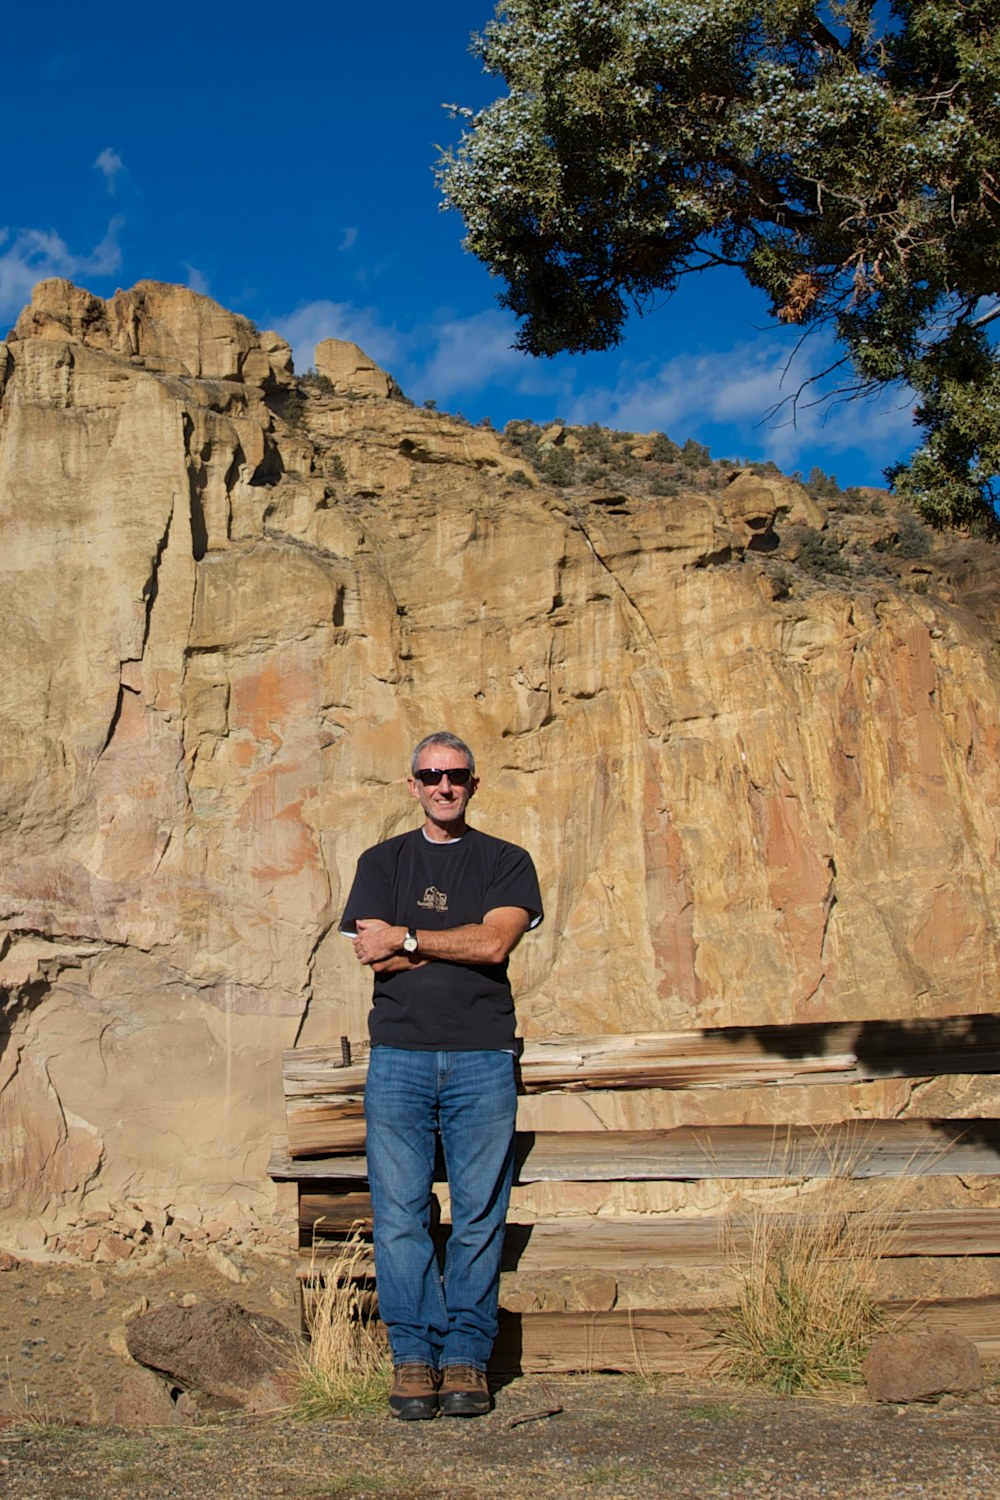 Photographer Shaun McGrath standing in front of a rock, tree and blue sky